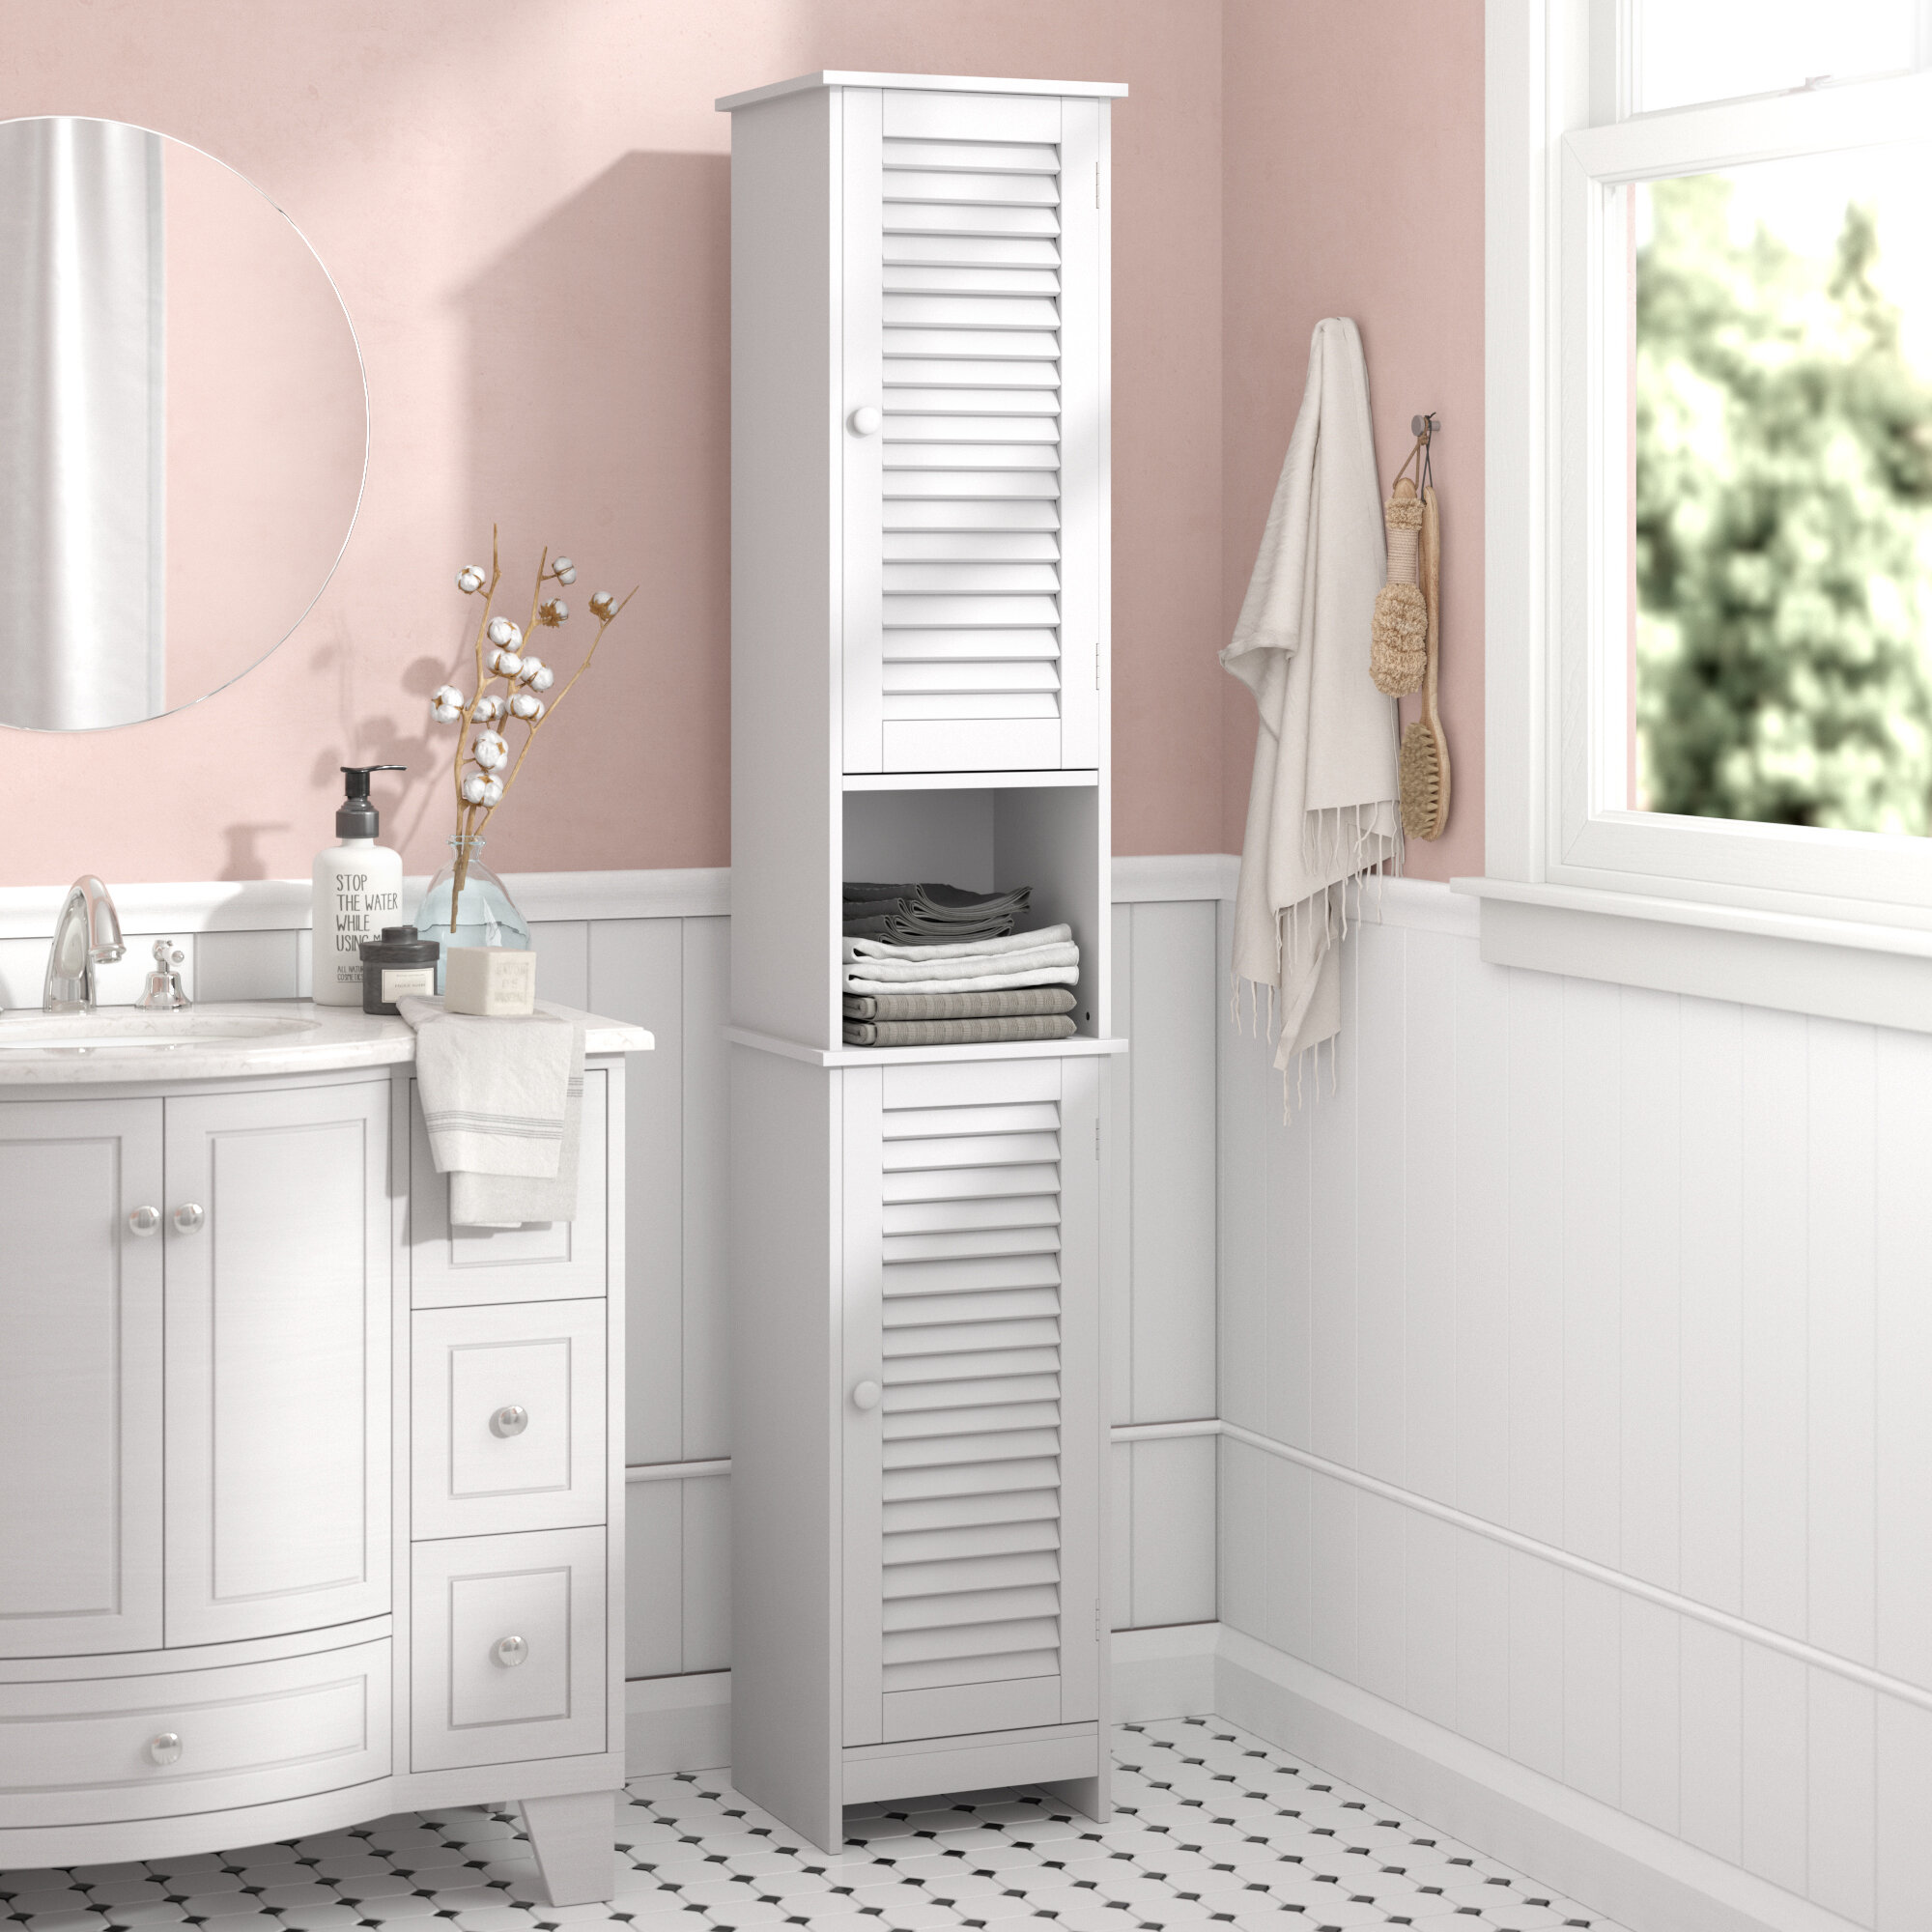 House Of Hampton 32 X 170cm Free Standing Tall Bathroom Cabinet Reviews Wayfair Co Uk